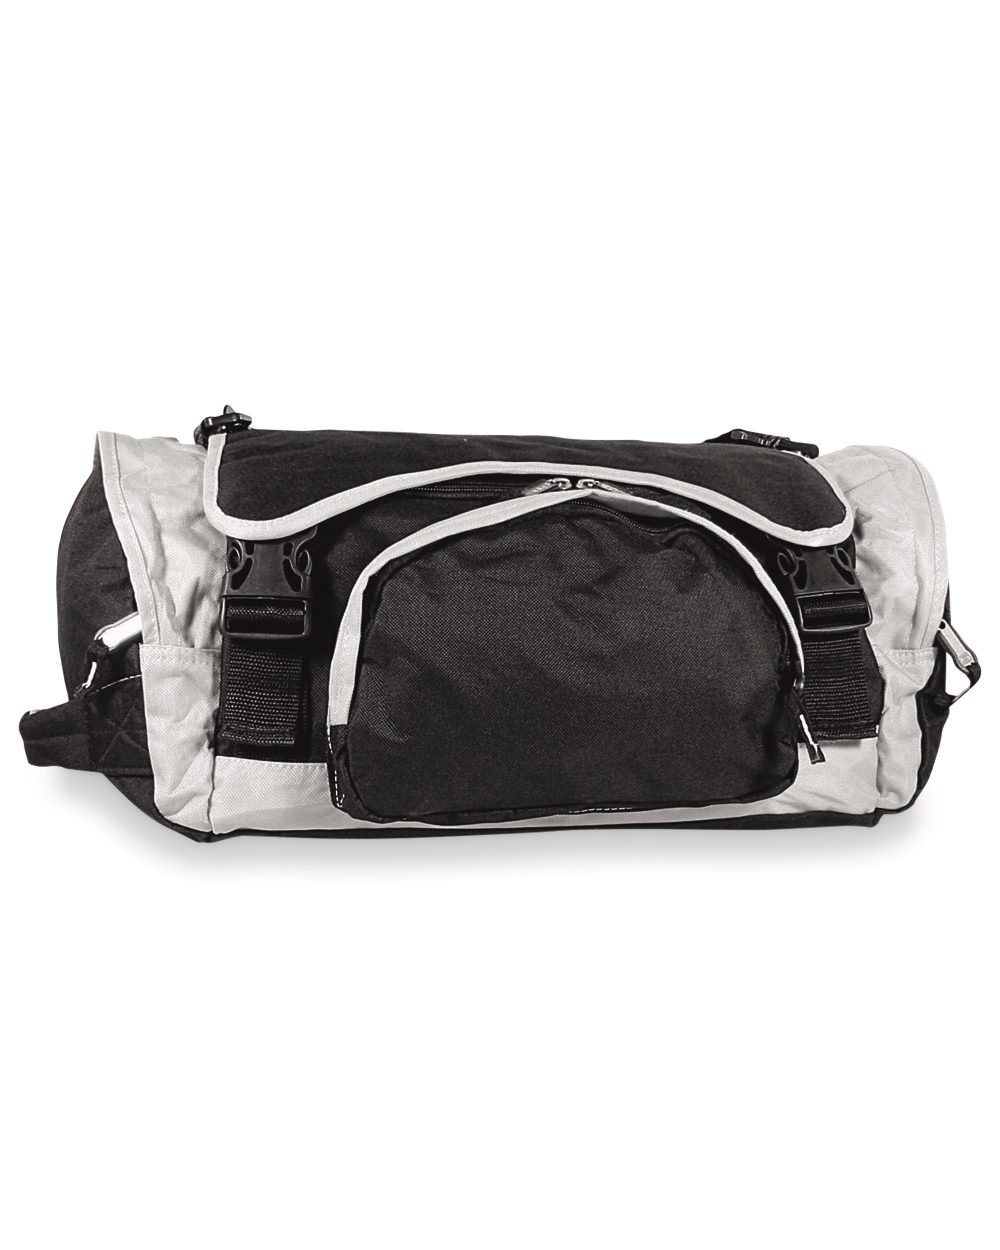 Valubag Multifunctional Travel Duffel Bag - VB0038